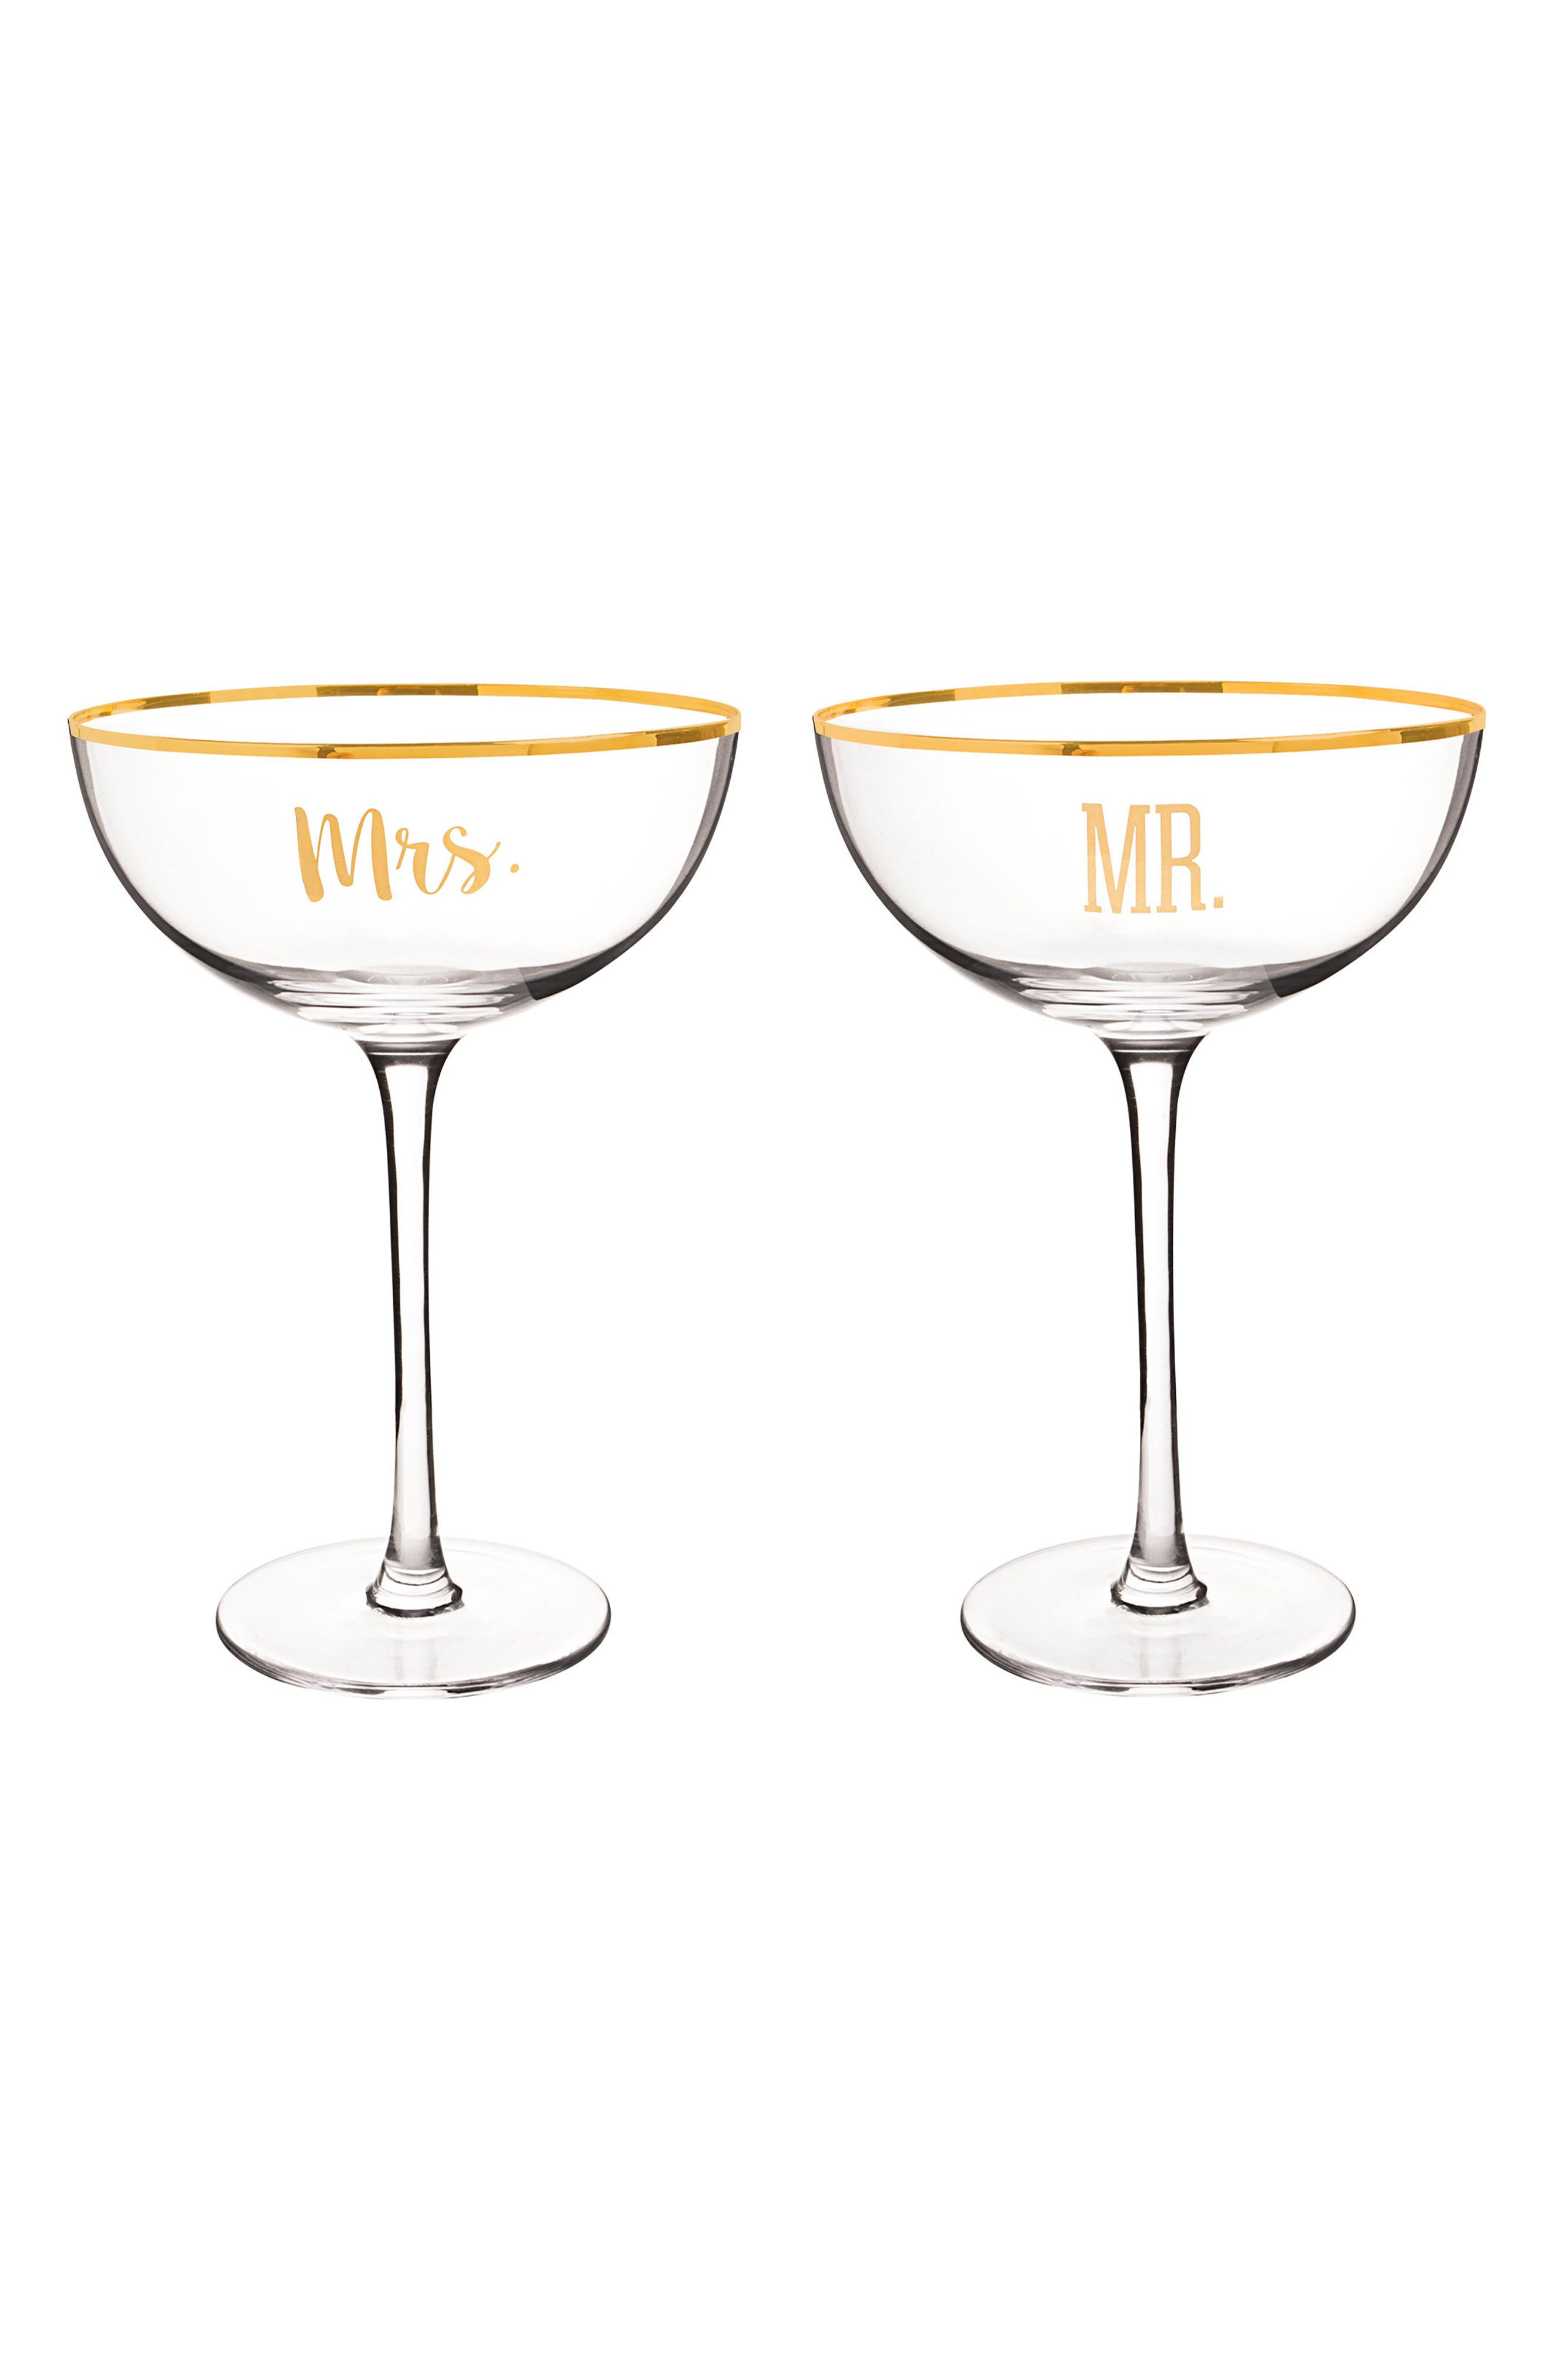 Main Image - Cathy's Concepts Mr. & Mrs. Set of 2 Champagne Coupe Toasting Glasses